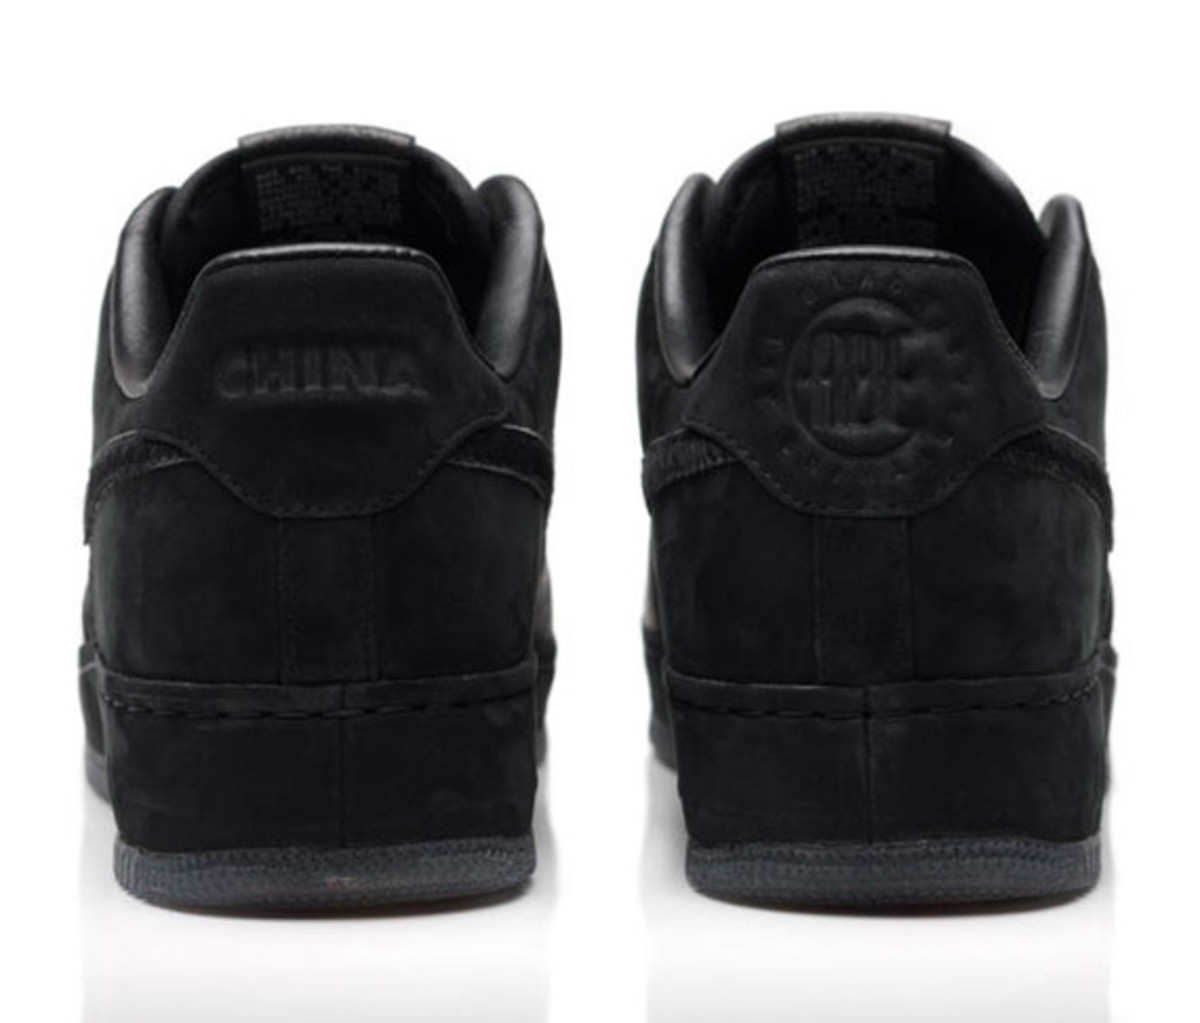 jay-z-nike-air-force-1-all-black-everything-china-04